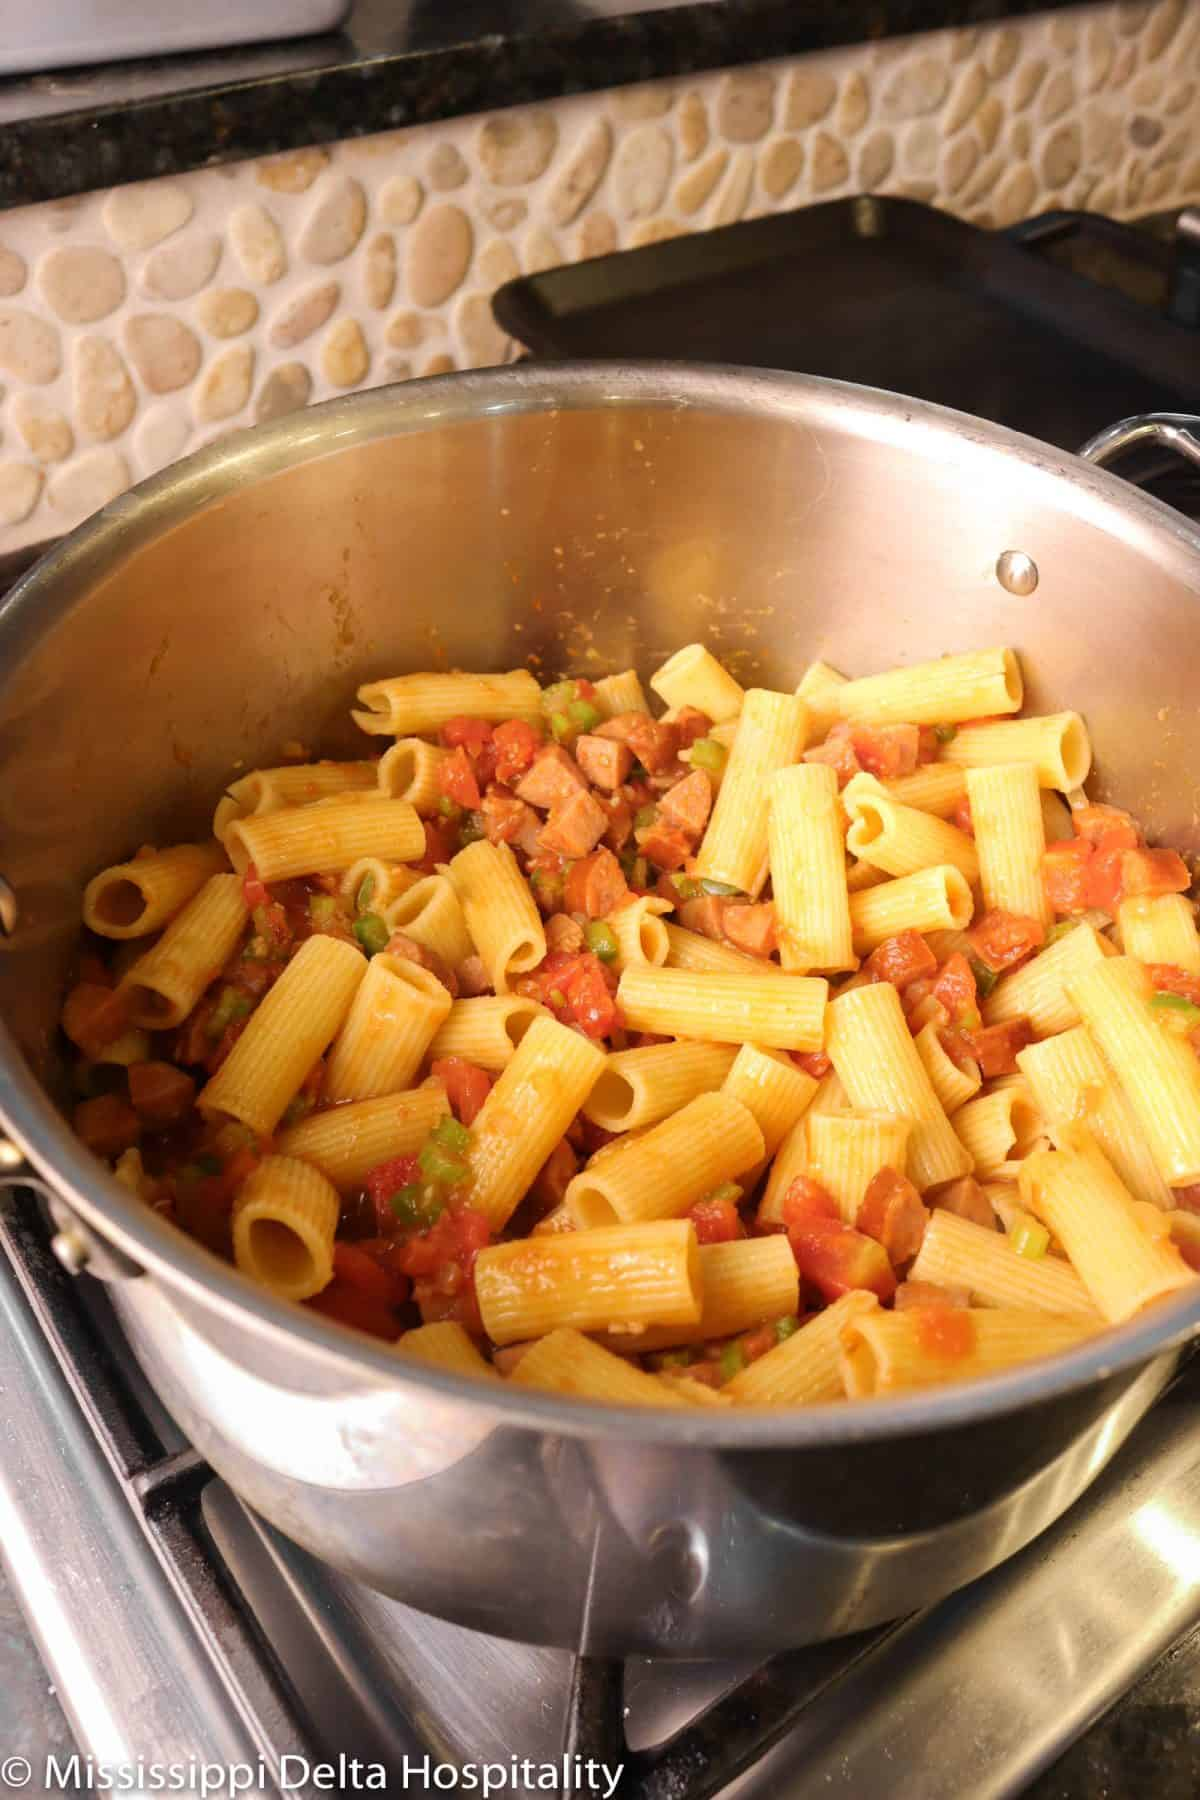 pasta stirred into vegetable and sausage mixture